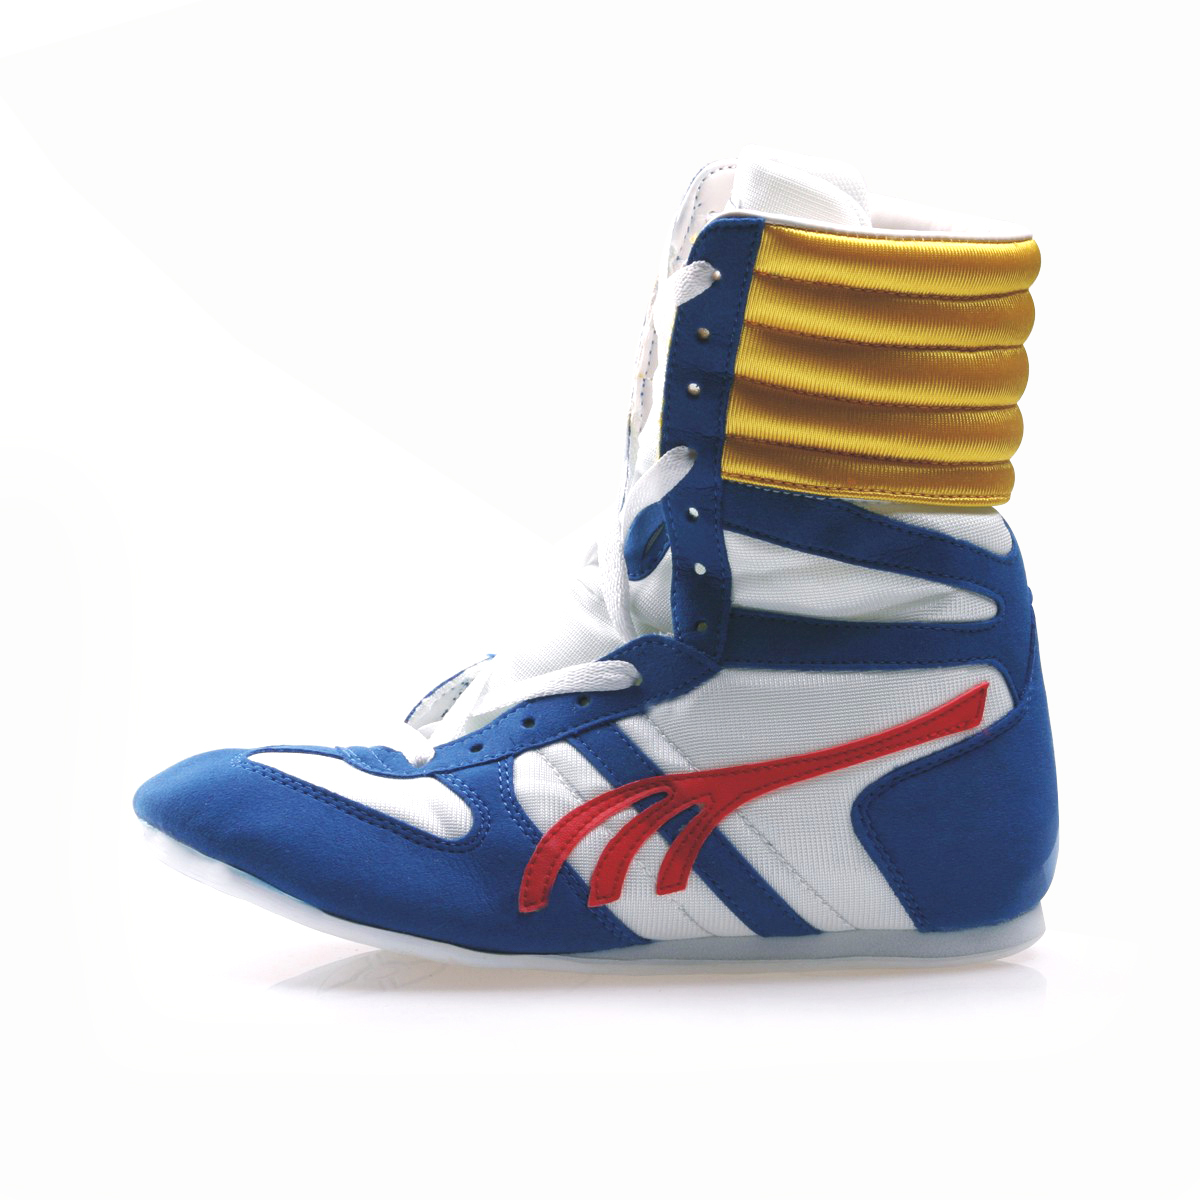 992febf61452 DO-WIN Brand Hight Quality Professional Unisex Woman Man Sports Shoes  Boxing Shoes Fitness Shoes